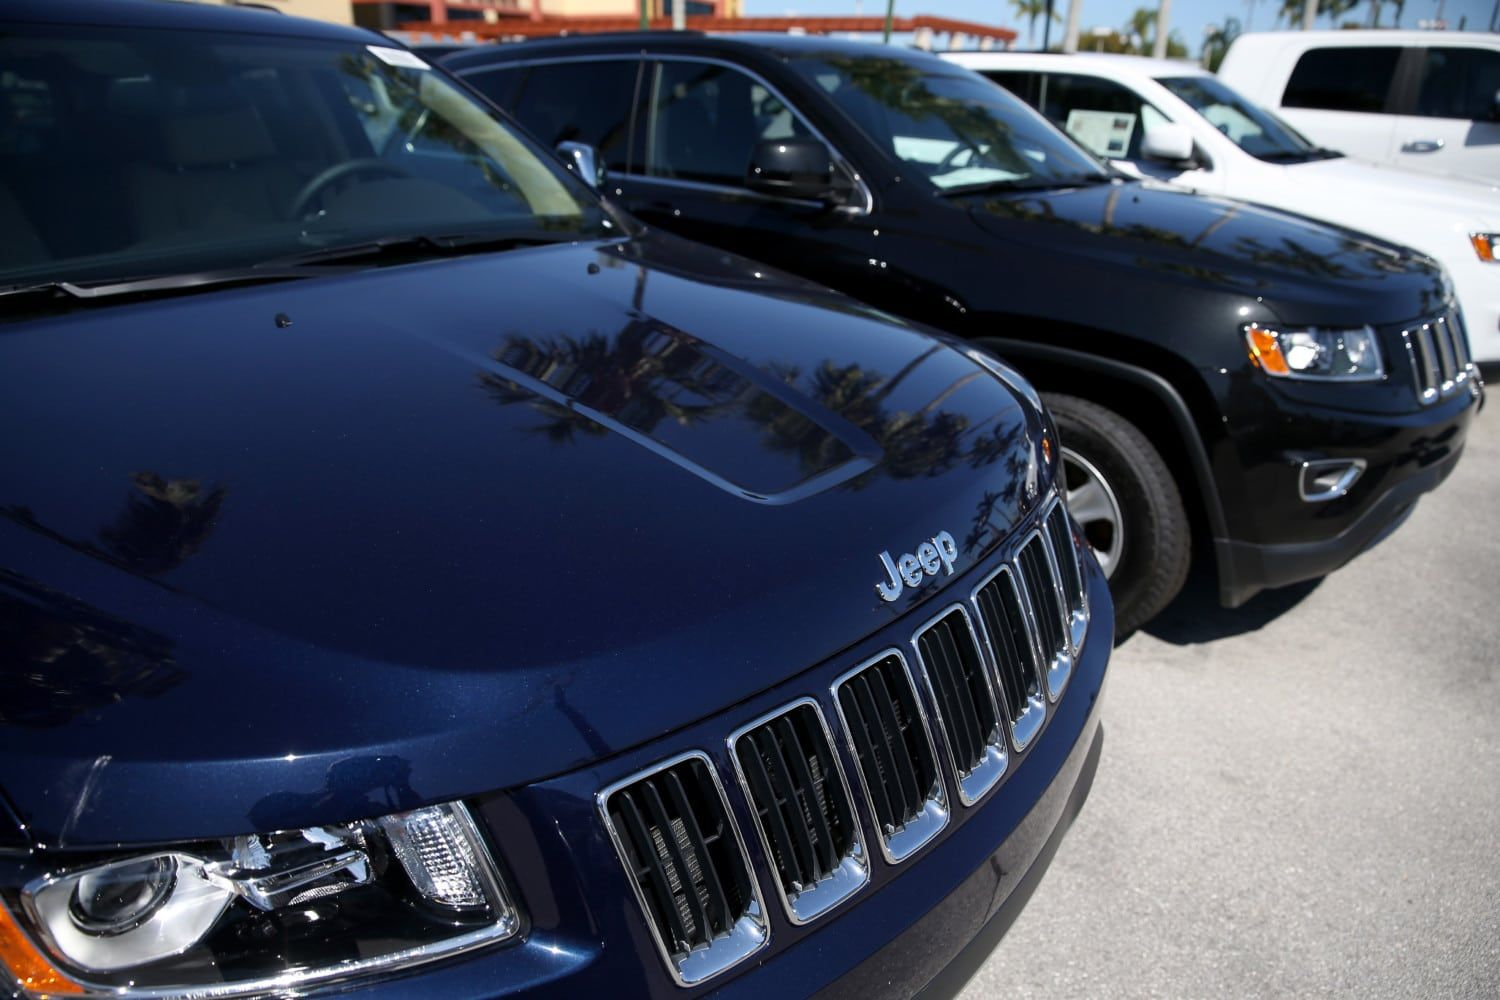 medium resolution of fiat chrysler recalls 4 8 million vehicles that could get stuck in cruise control